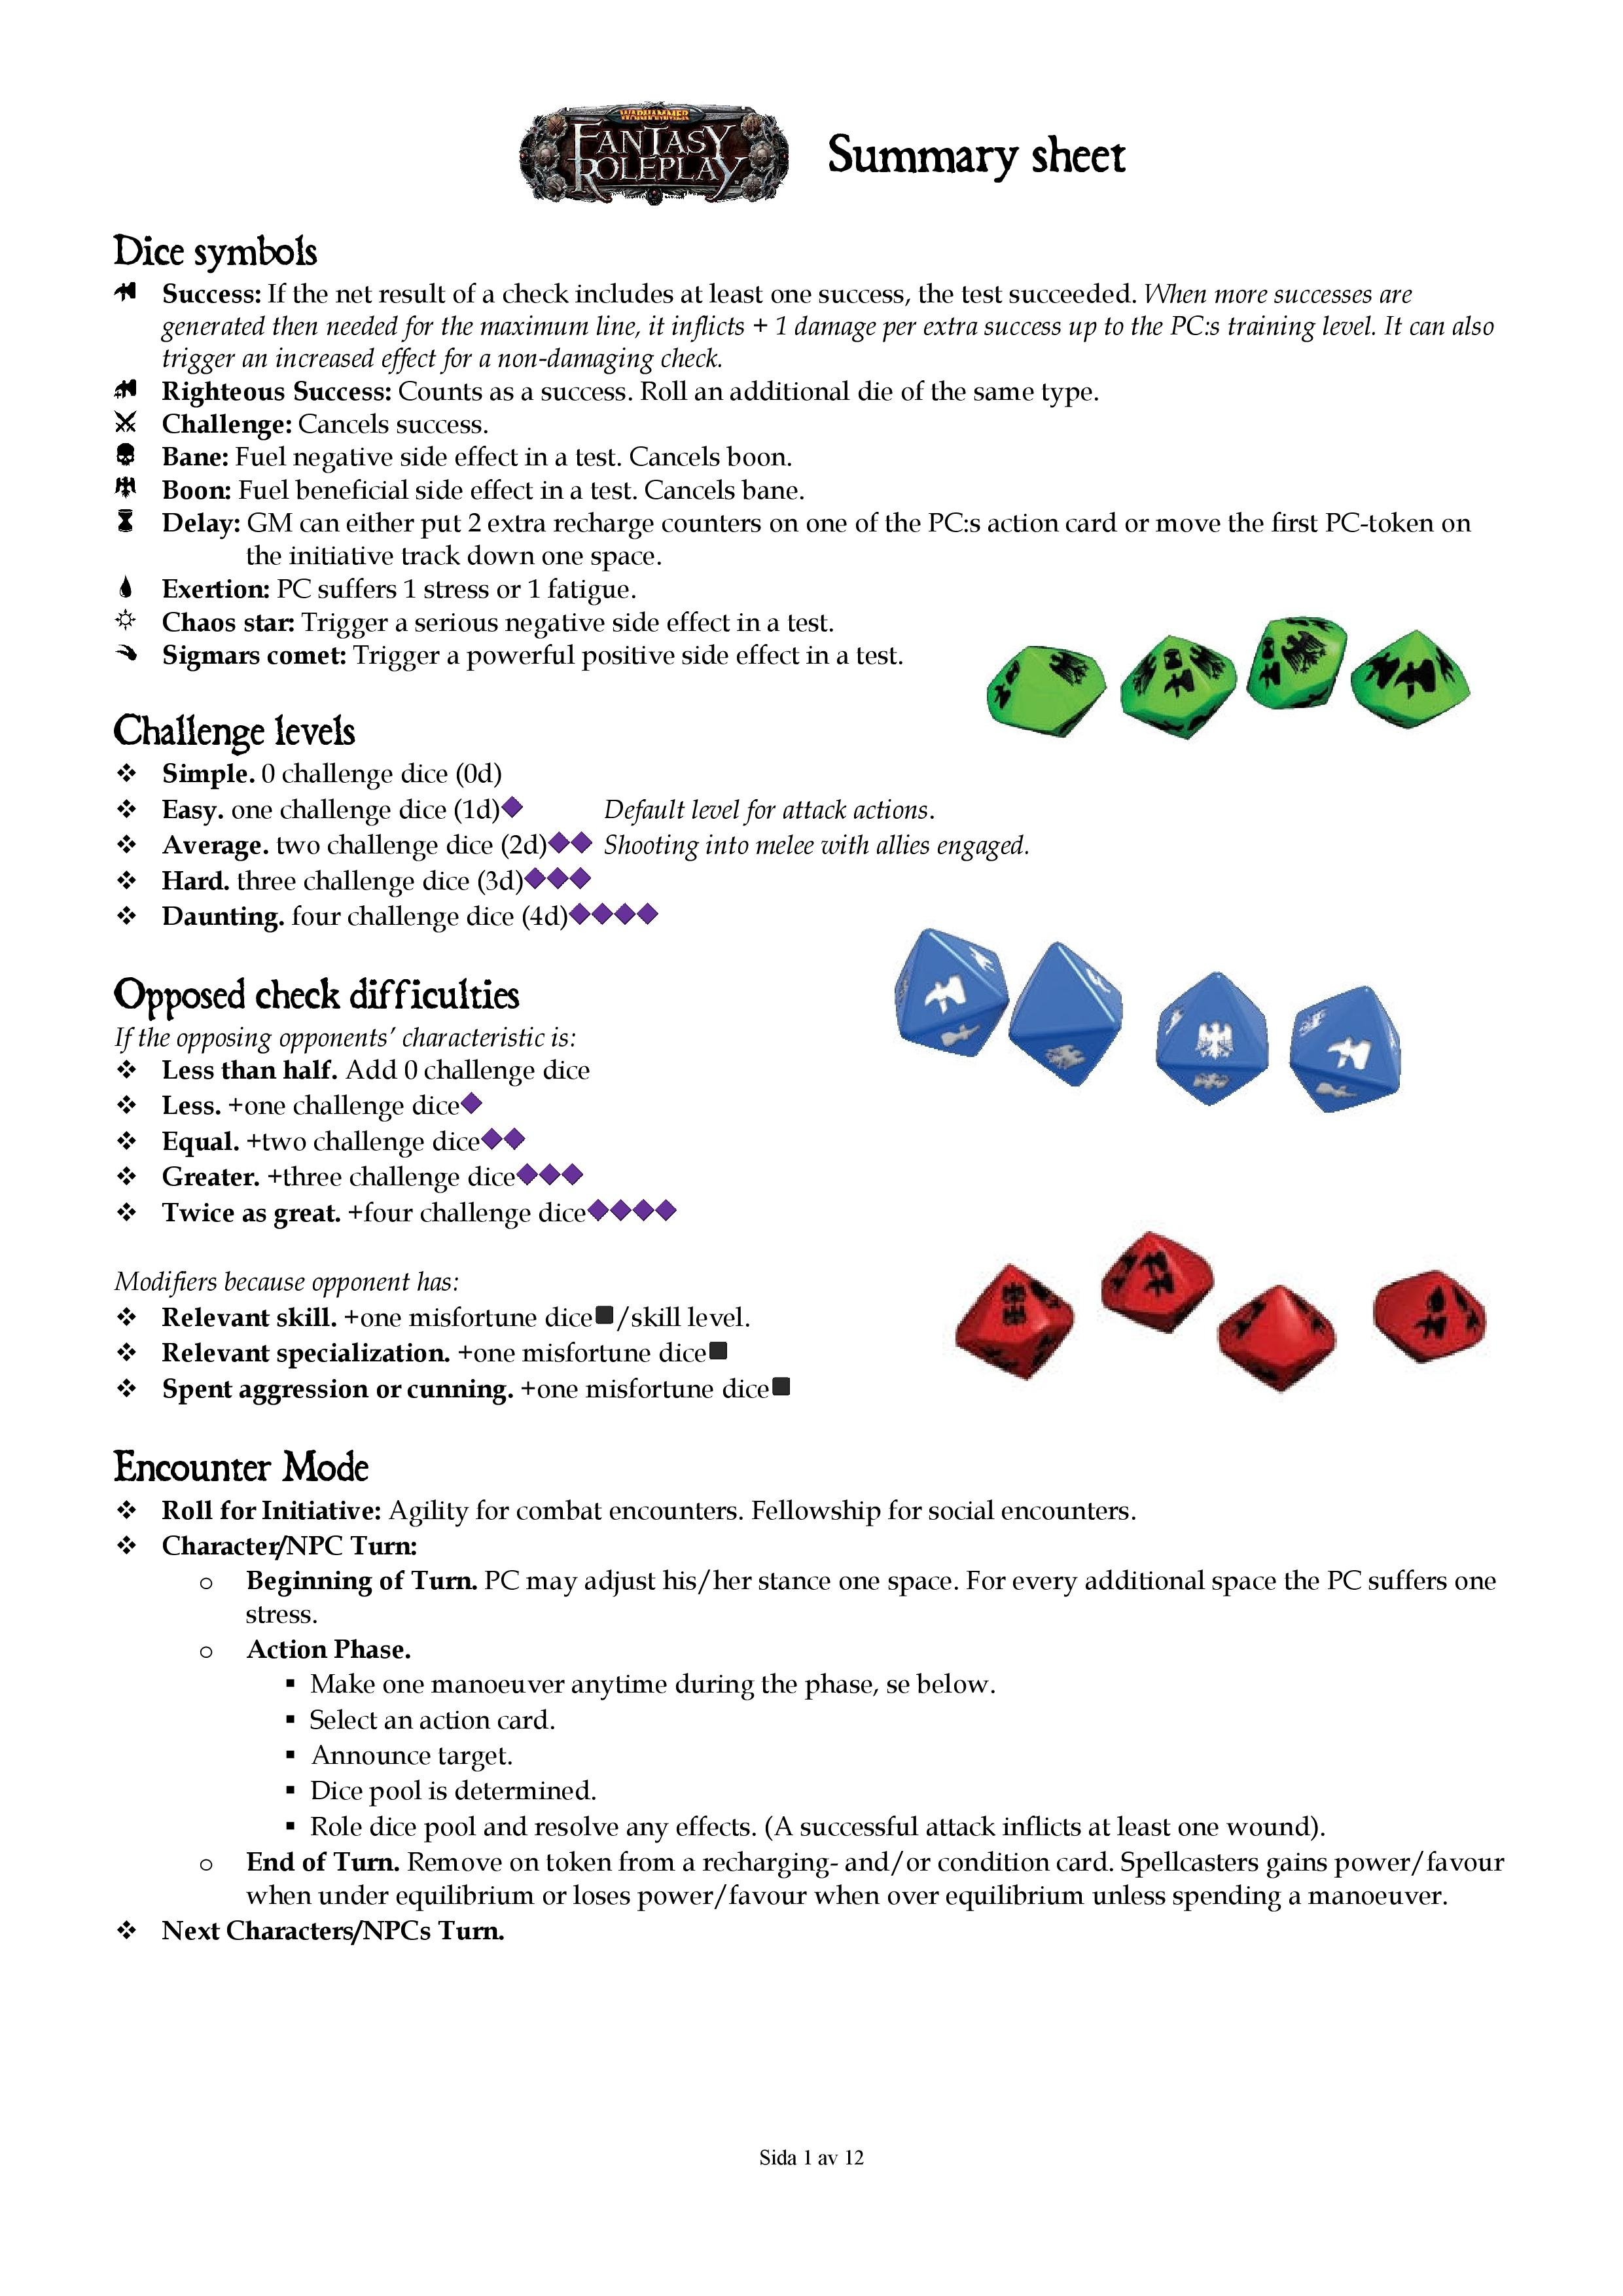 WFRP_3ed_Summary_Sheet_-_Players-page-001.jpg